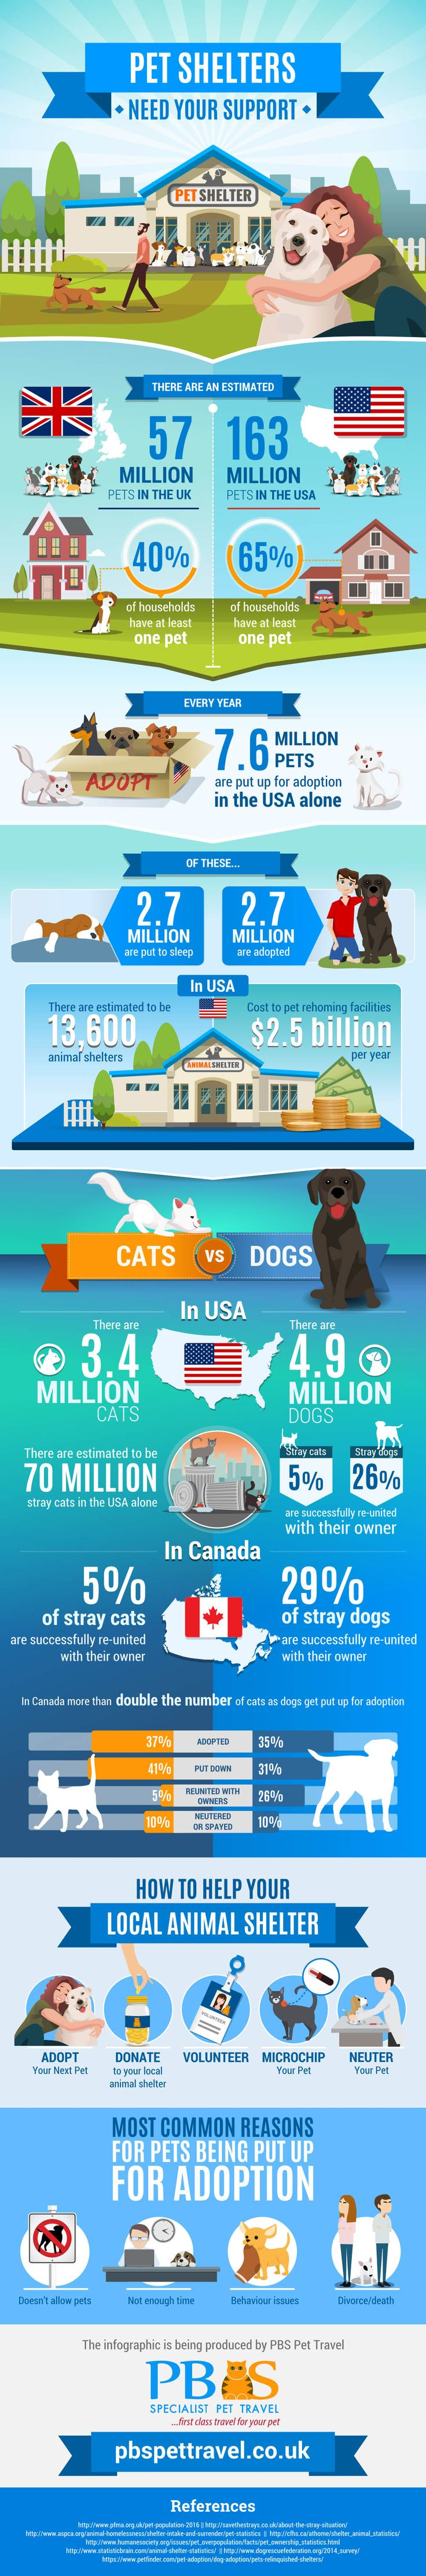 Have you ever wondered how many pets are rescued and re-homed each year? The answer might just shock you. Millions of pets are lost or surrendered each year, and despite the best efforts of pet centers very few are ever re-united with their owners. Pet relocation firm PBS Pet Travel has put together the following infographic, which reveals the shocking pet re-homing statistics you might not know, together with advice on what you can do to assist your local pet rescue center.